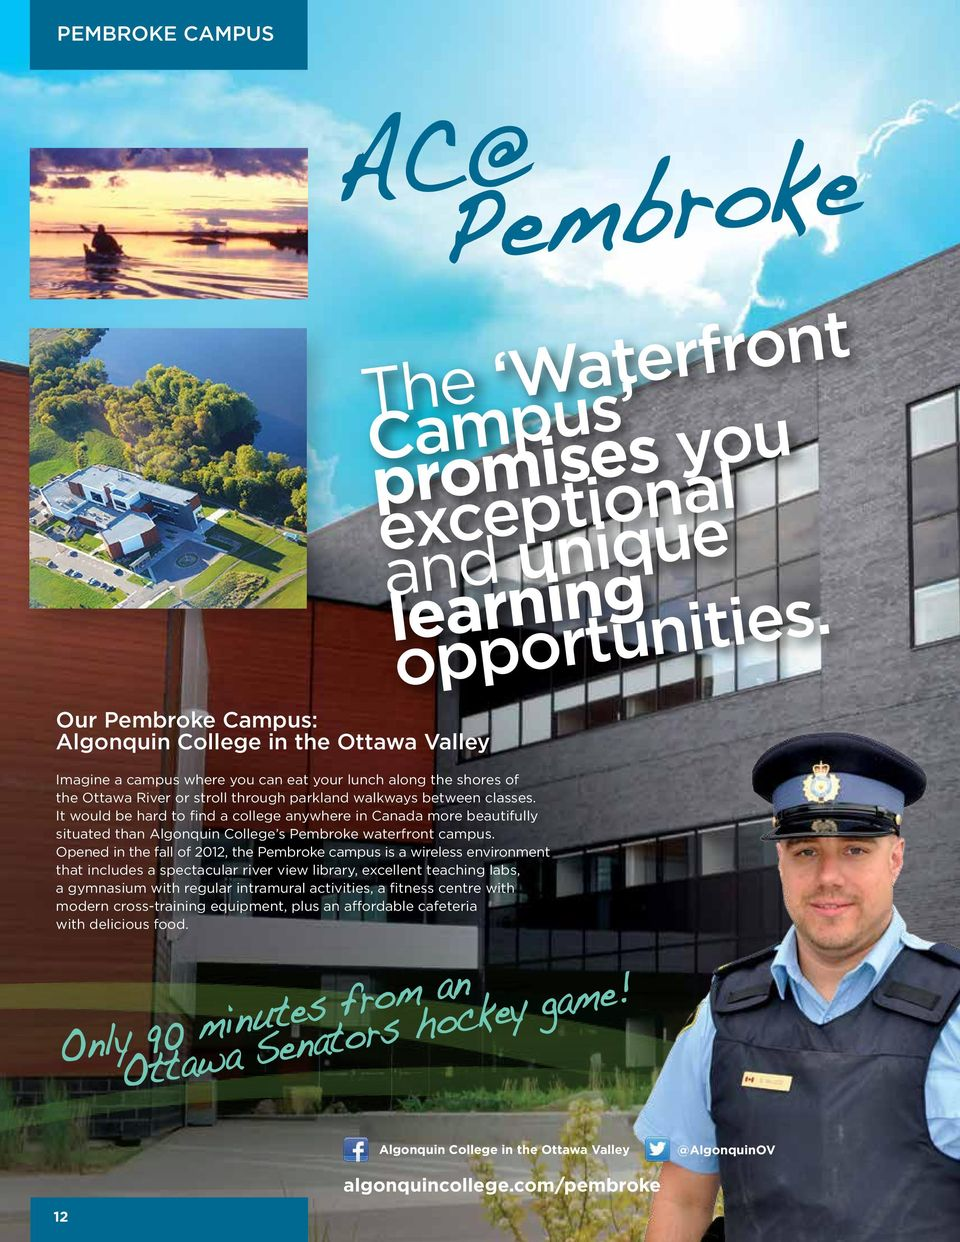 It would be hard to find a college anywhere in Canada more beautifully situated than Algonquin College s Pembroke waterfront campus.